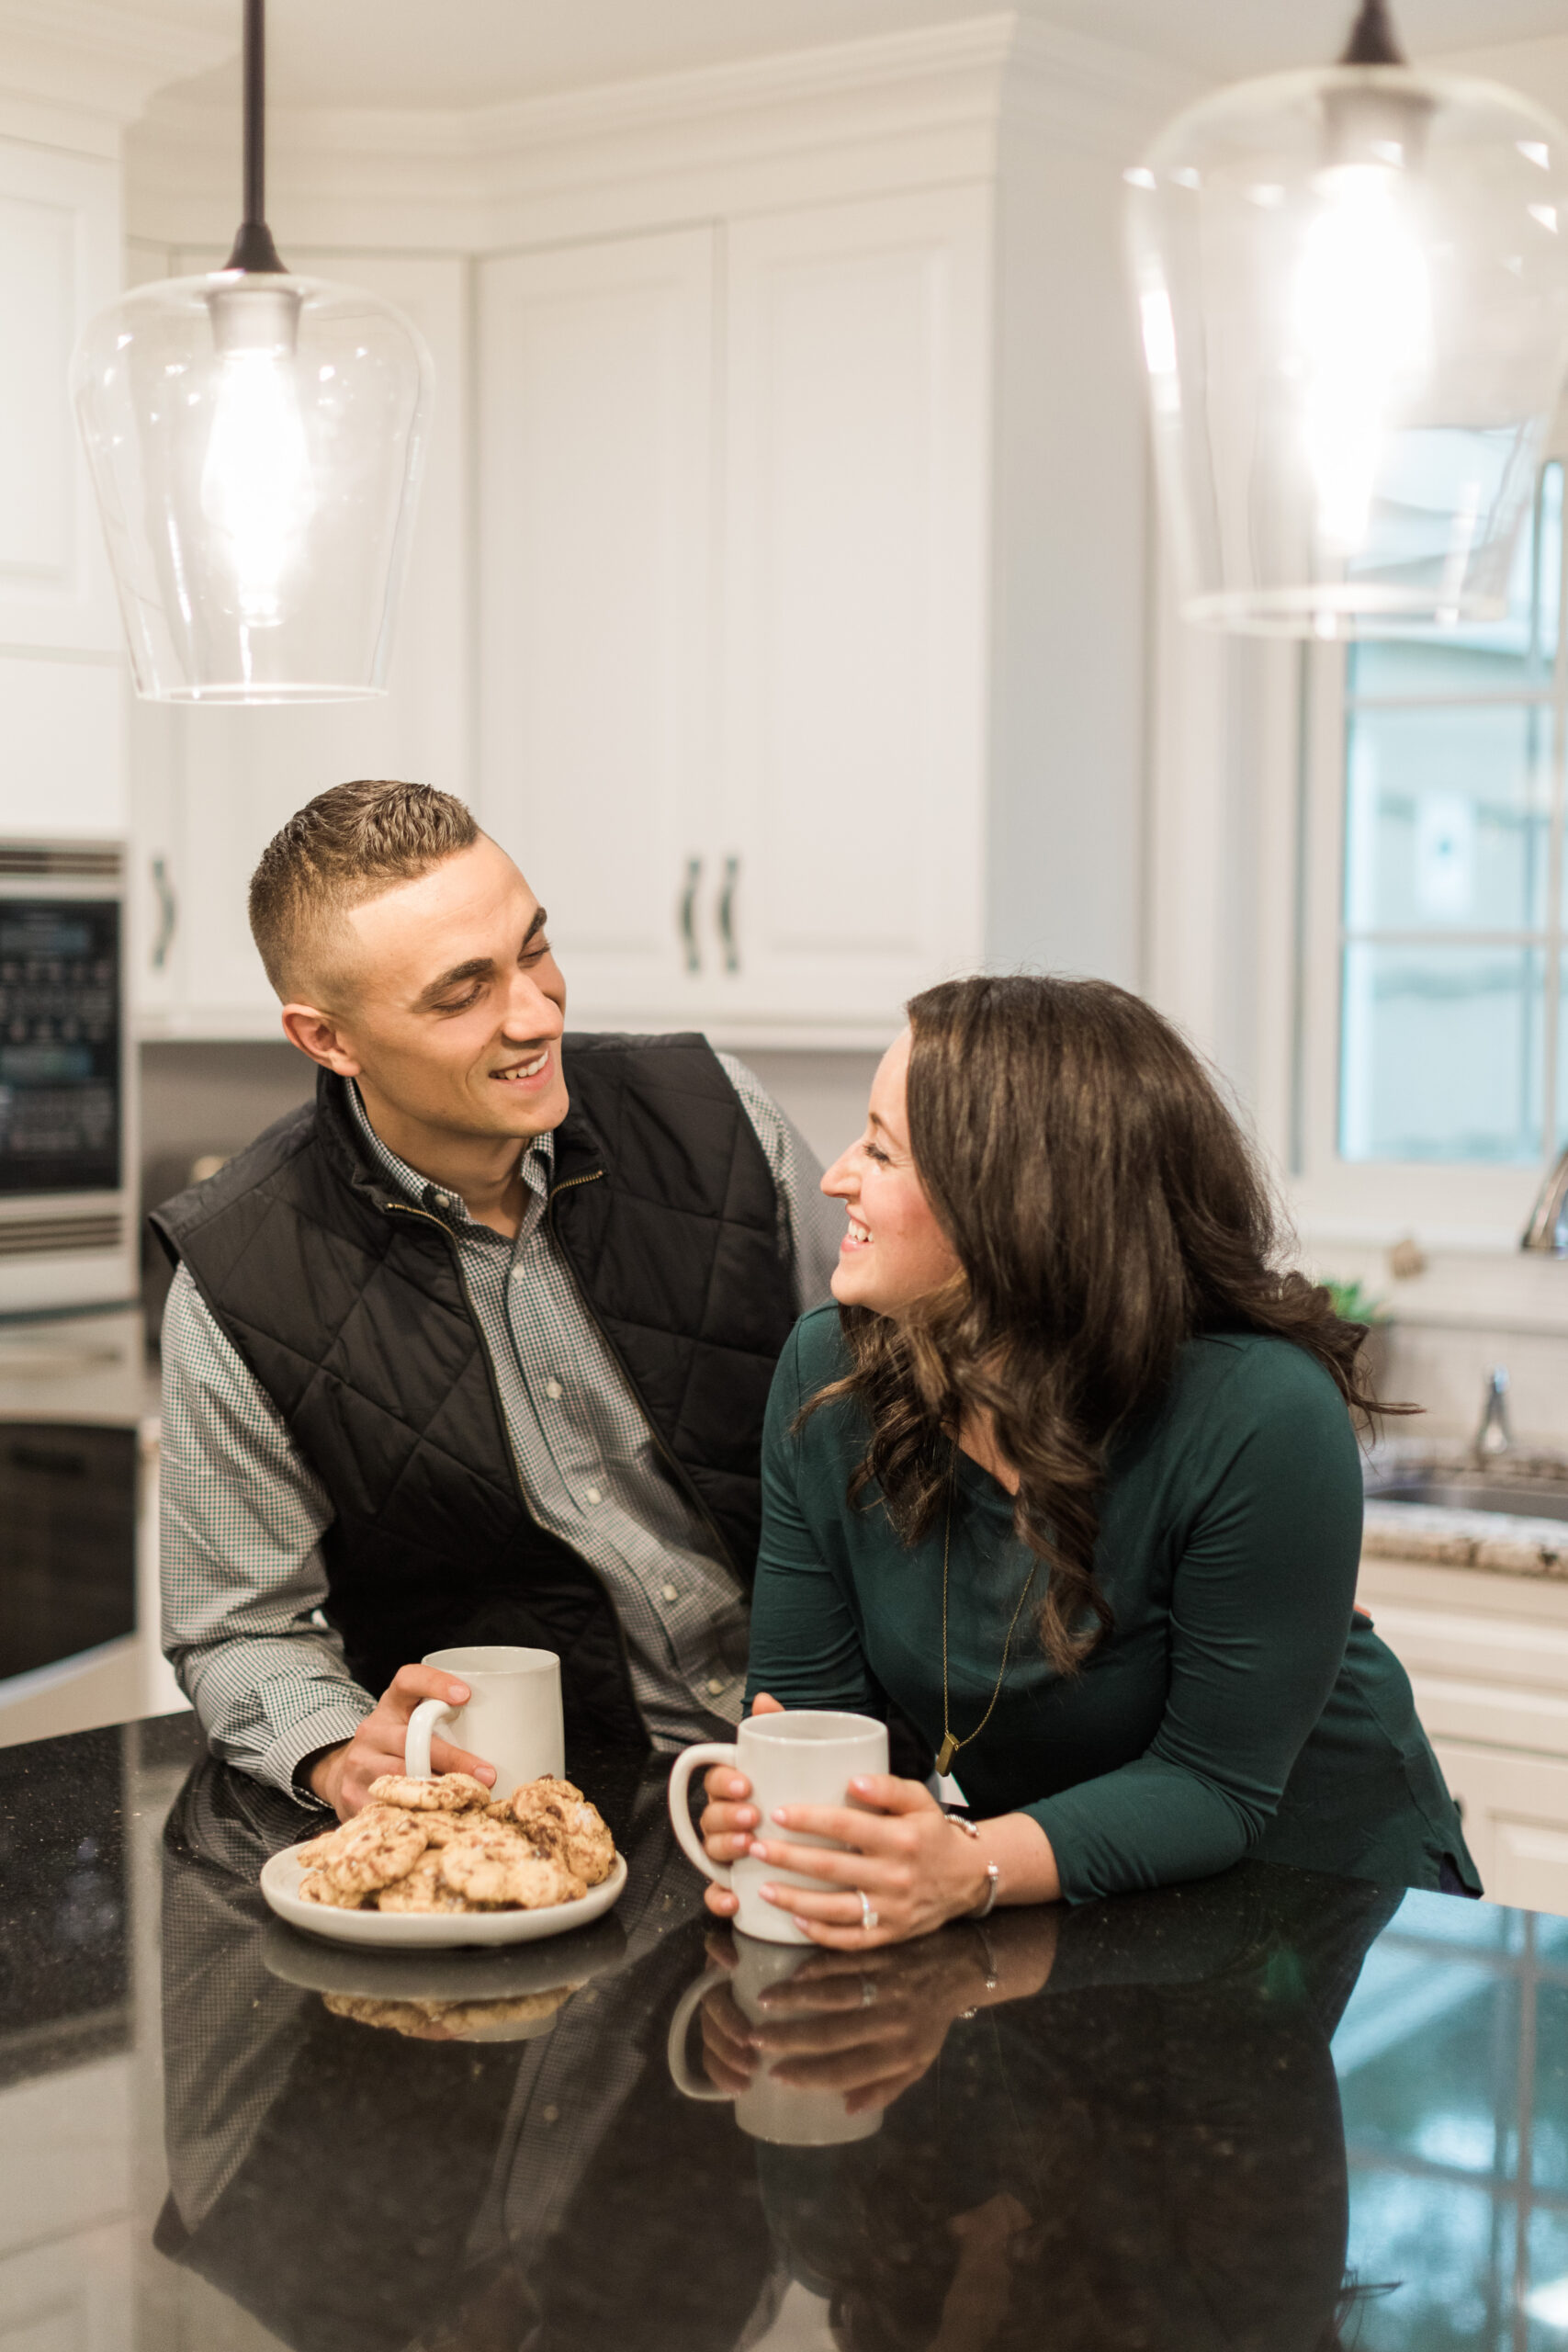 SEO Case Study with the clean eating couple